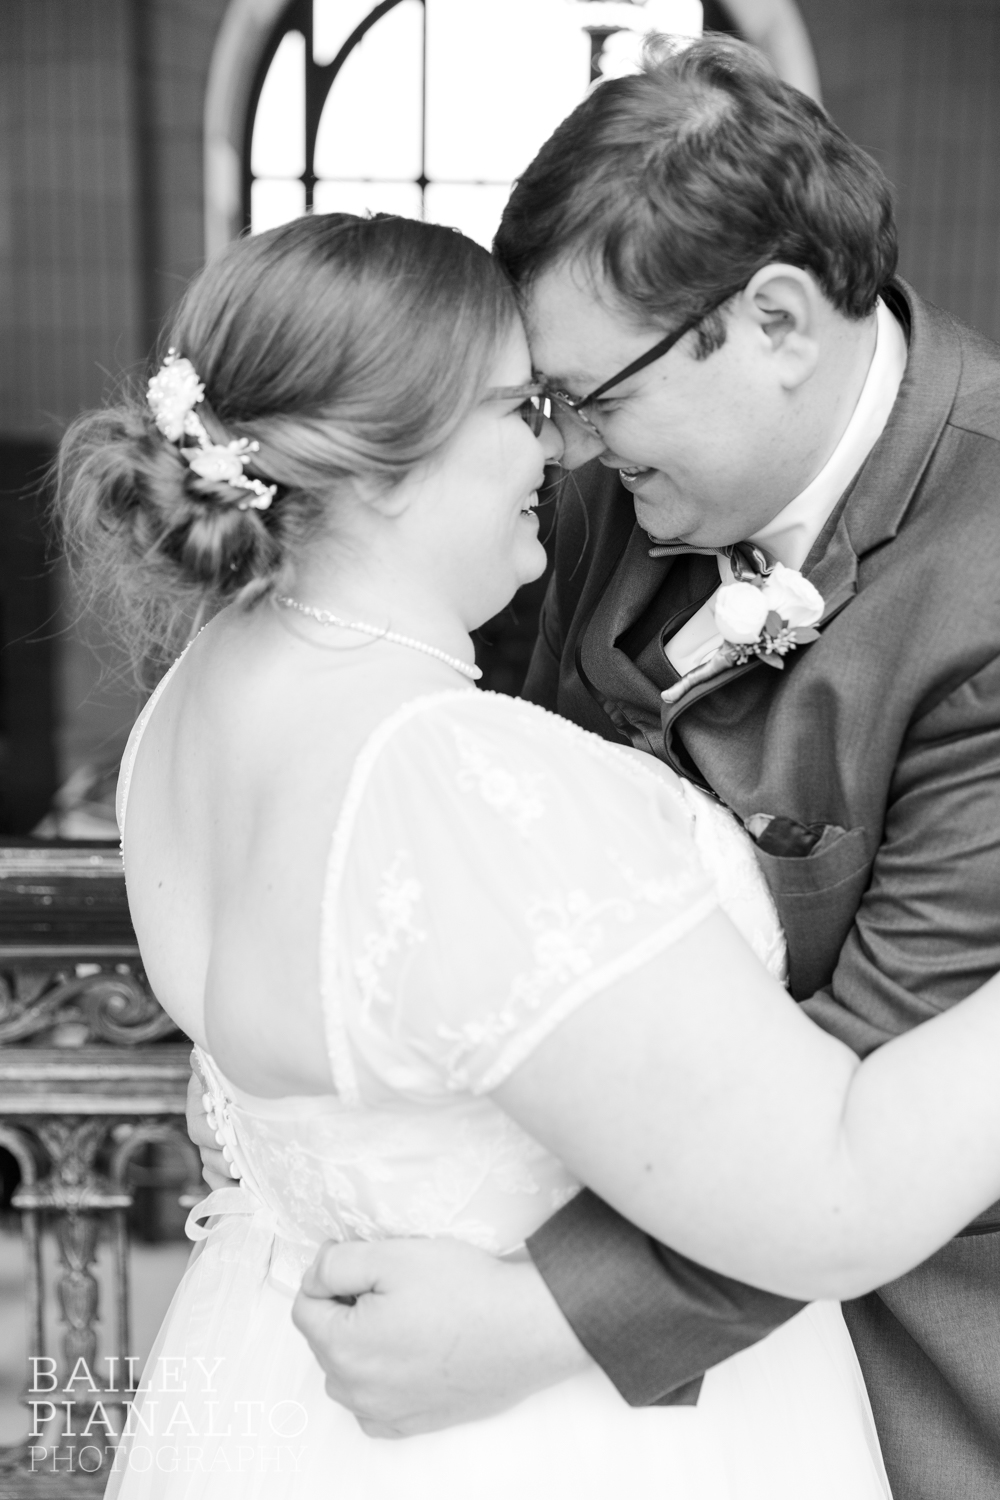 Bride & Groom Portraits at Purple & Gray Down-to-Earth Spring Wedding  | Union Station | Kansas City, MO